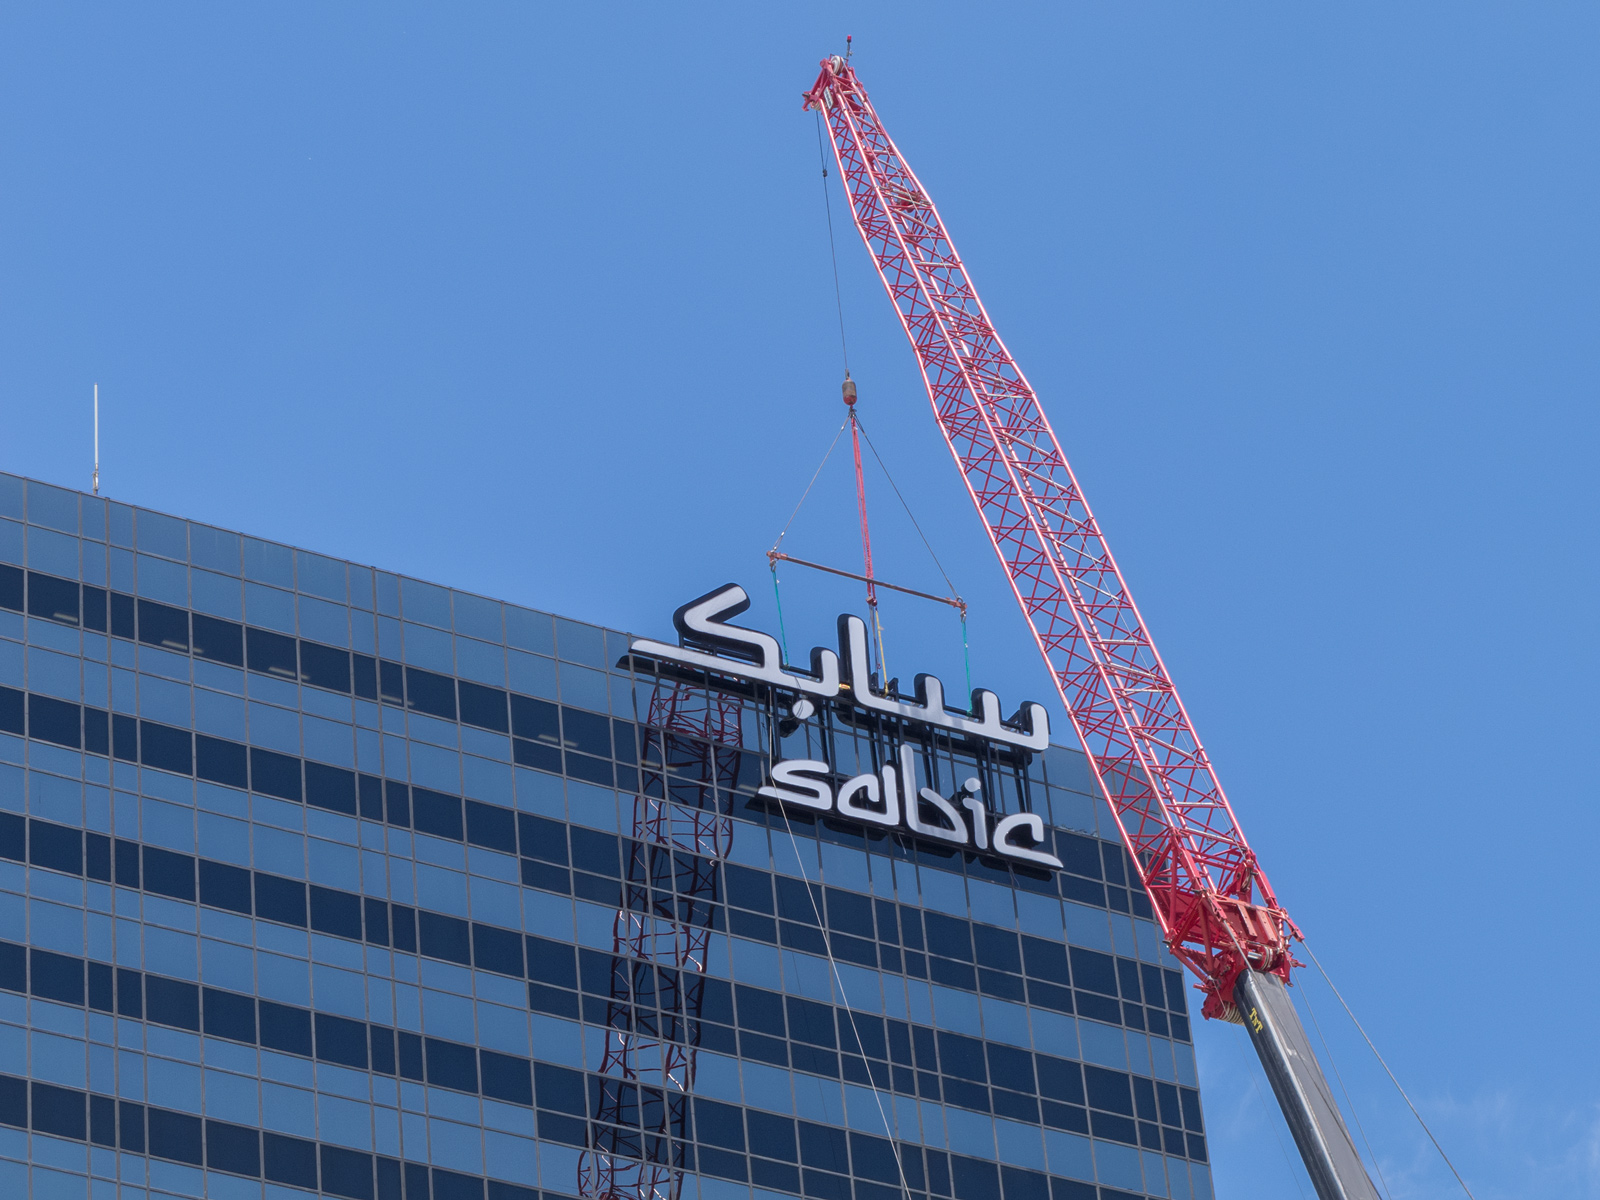 View from ground of crane supporting grand scale channel letters during installation to roof of office tower.